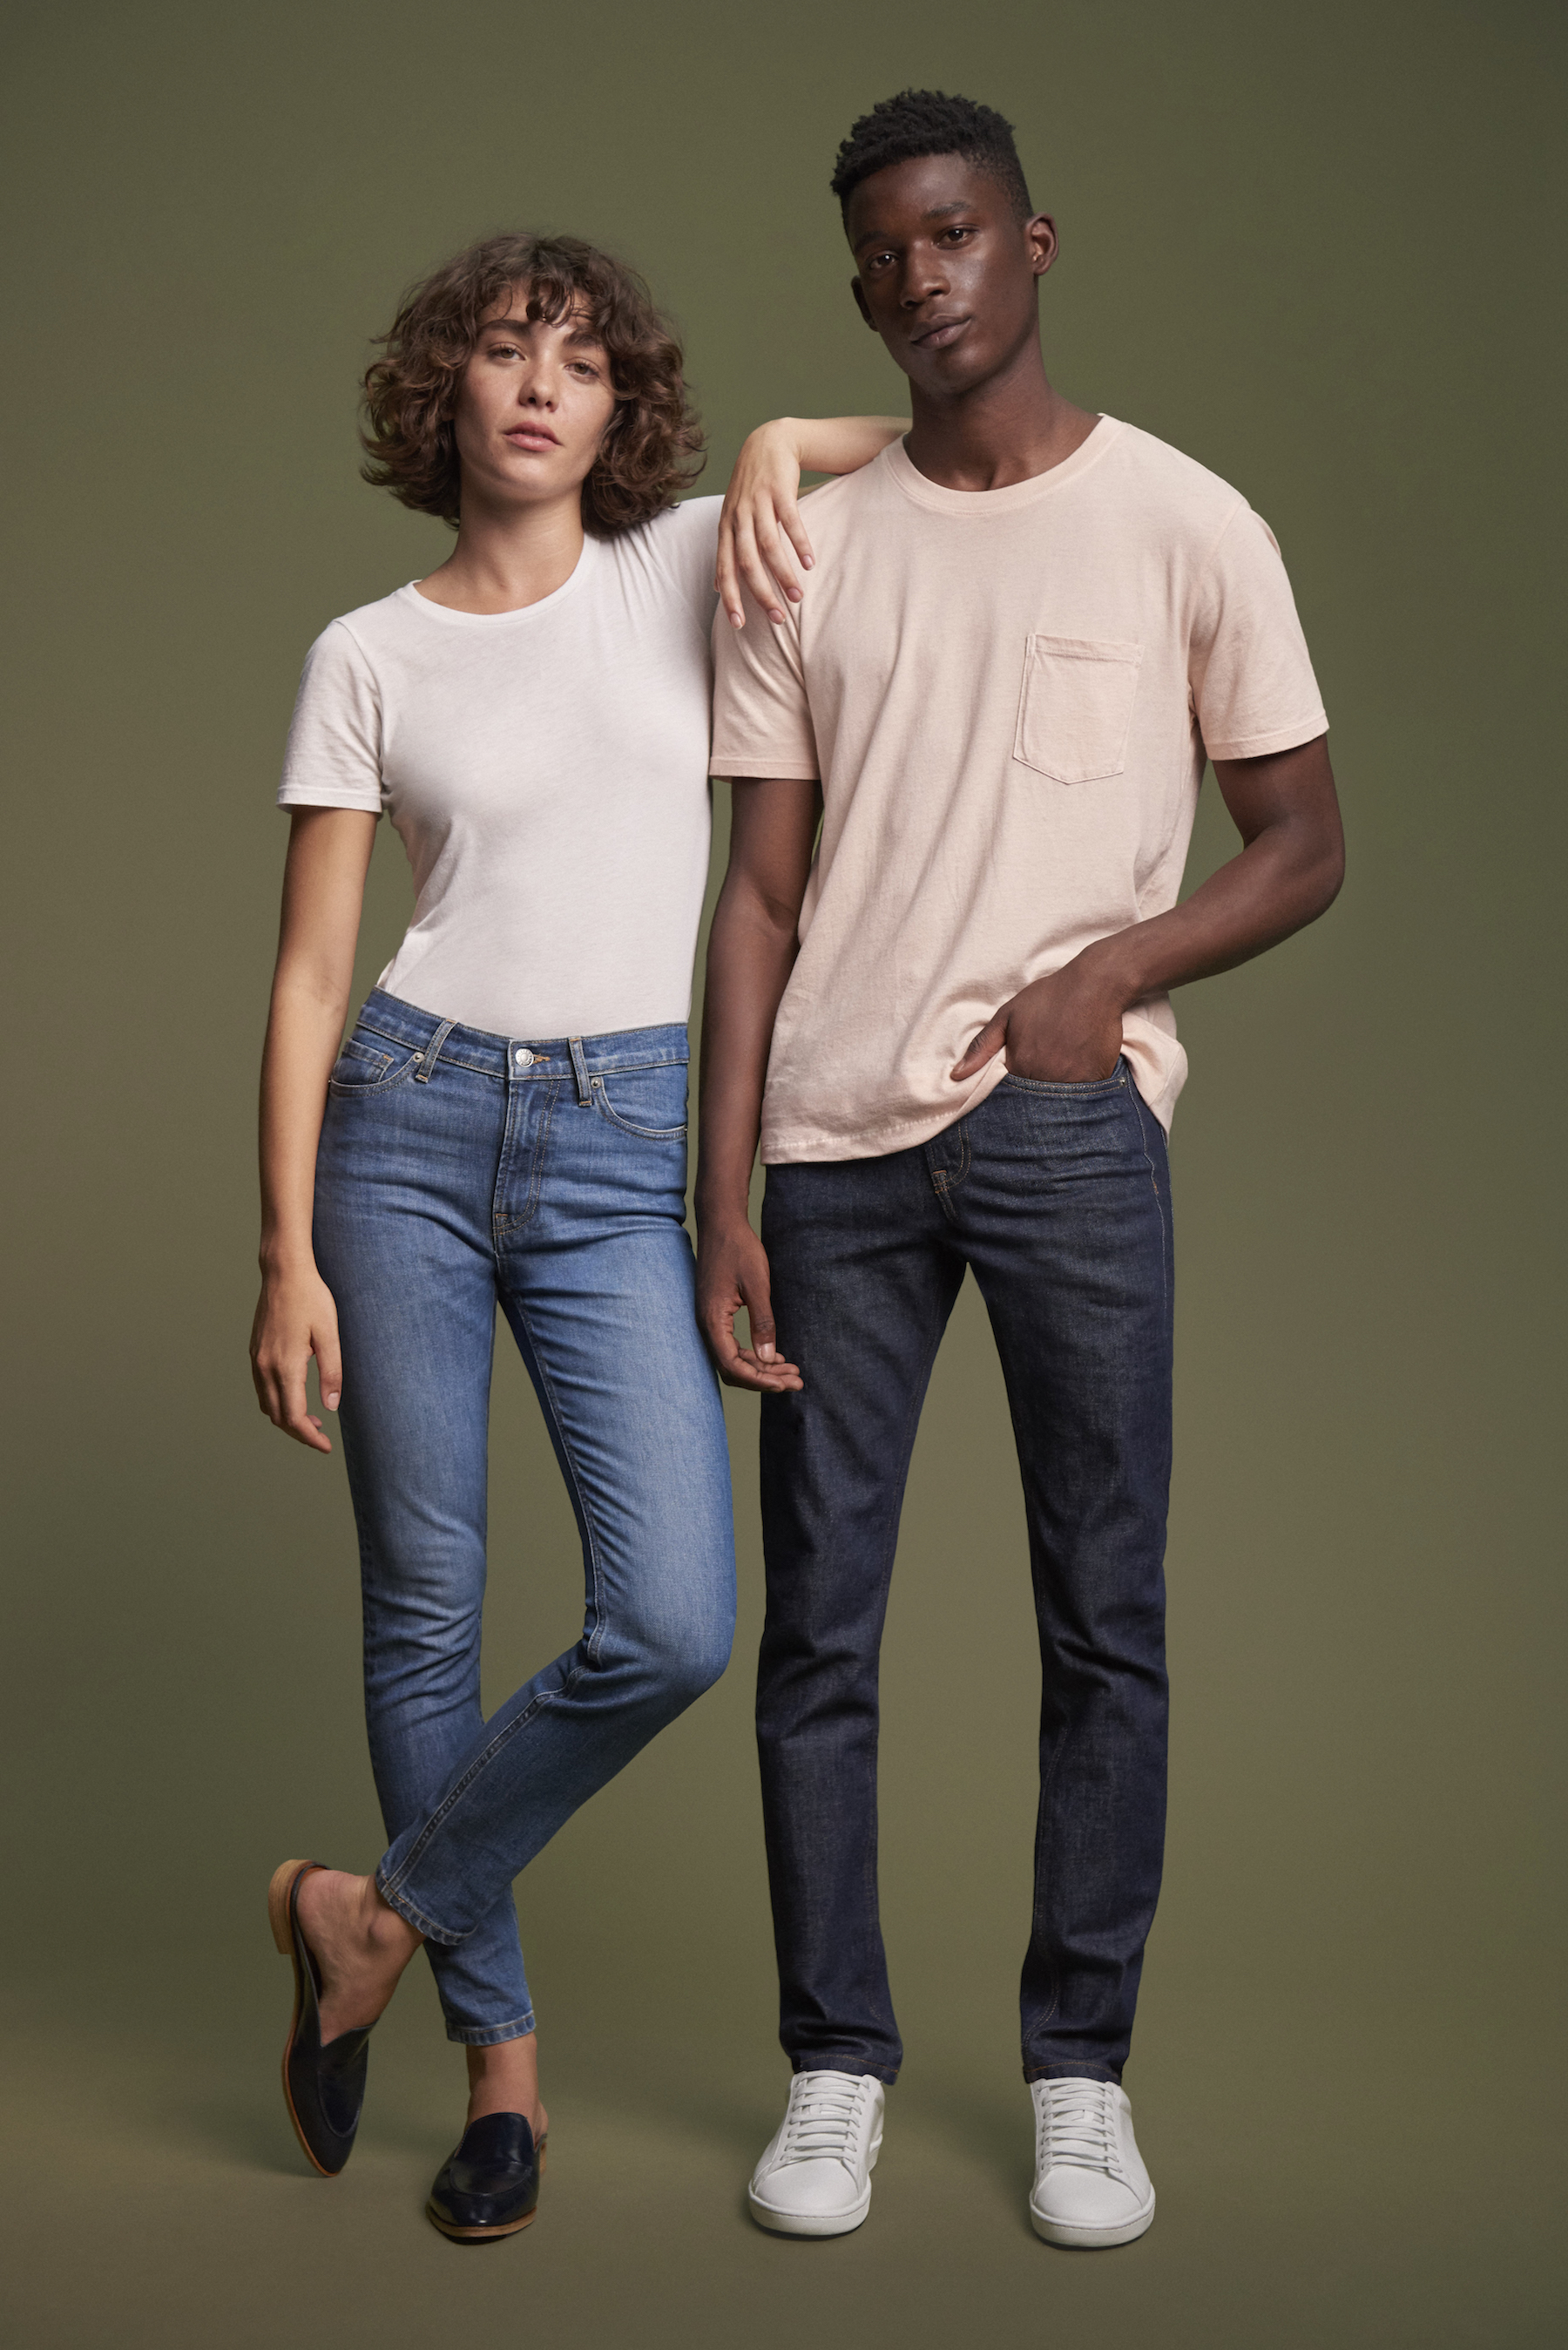 Two models wearing jeans and a T-shirt